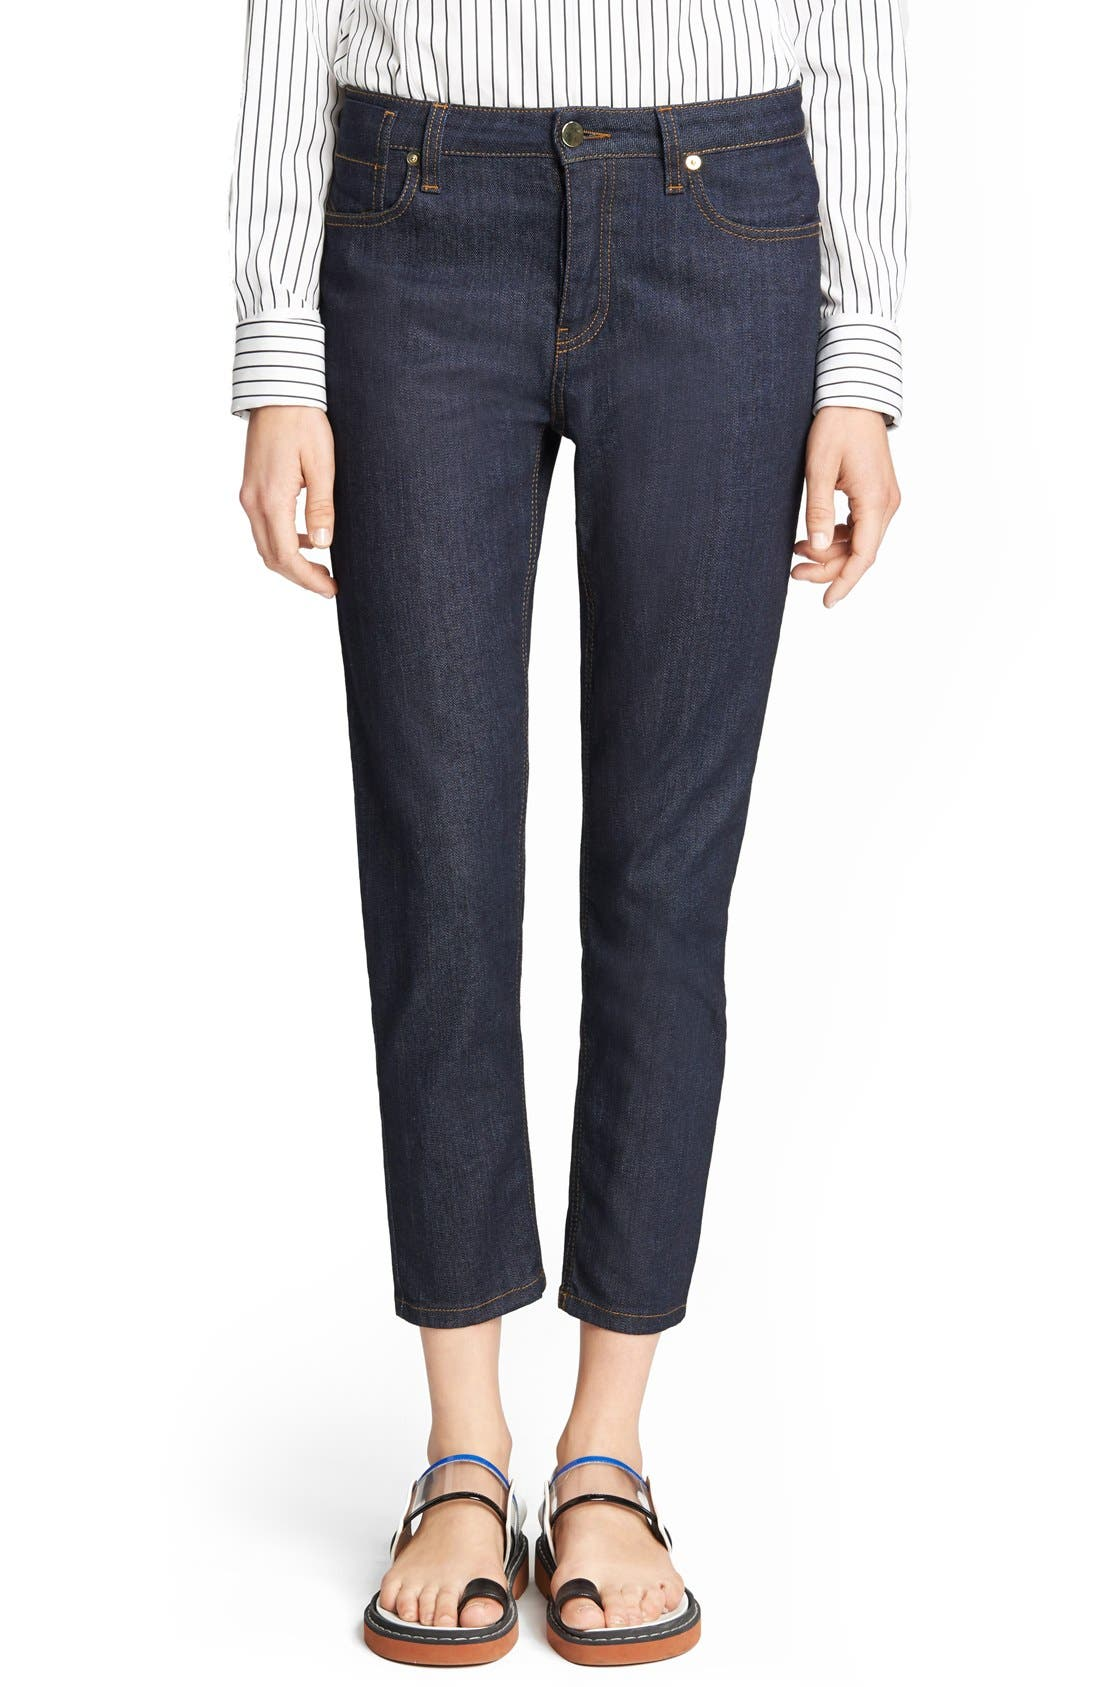 Alternate Image 1 Selected - Marni Boyfriend Jeans